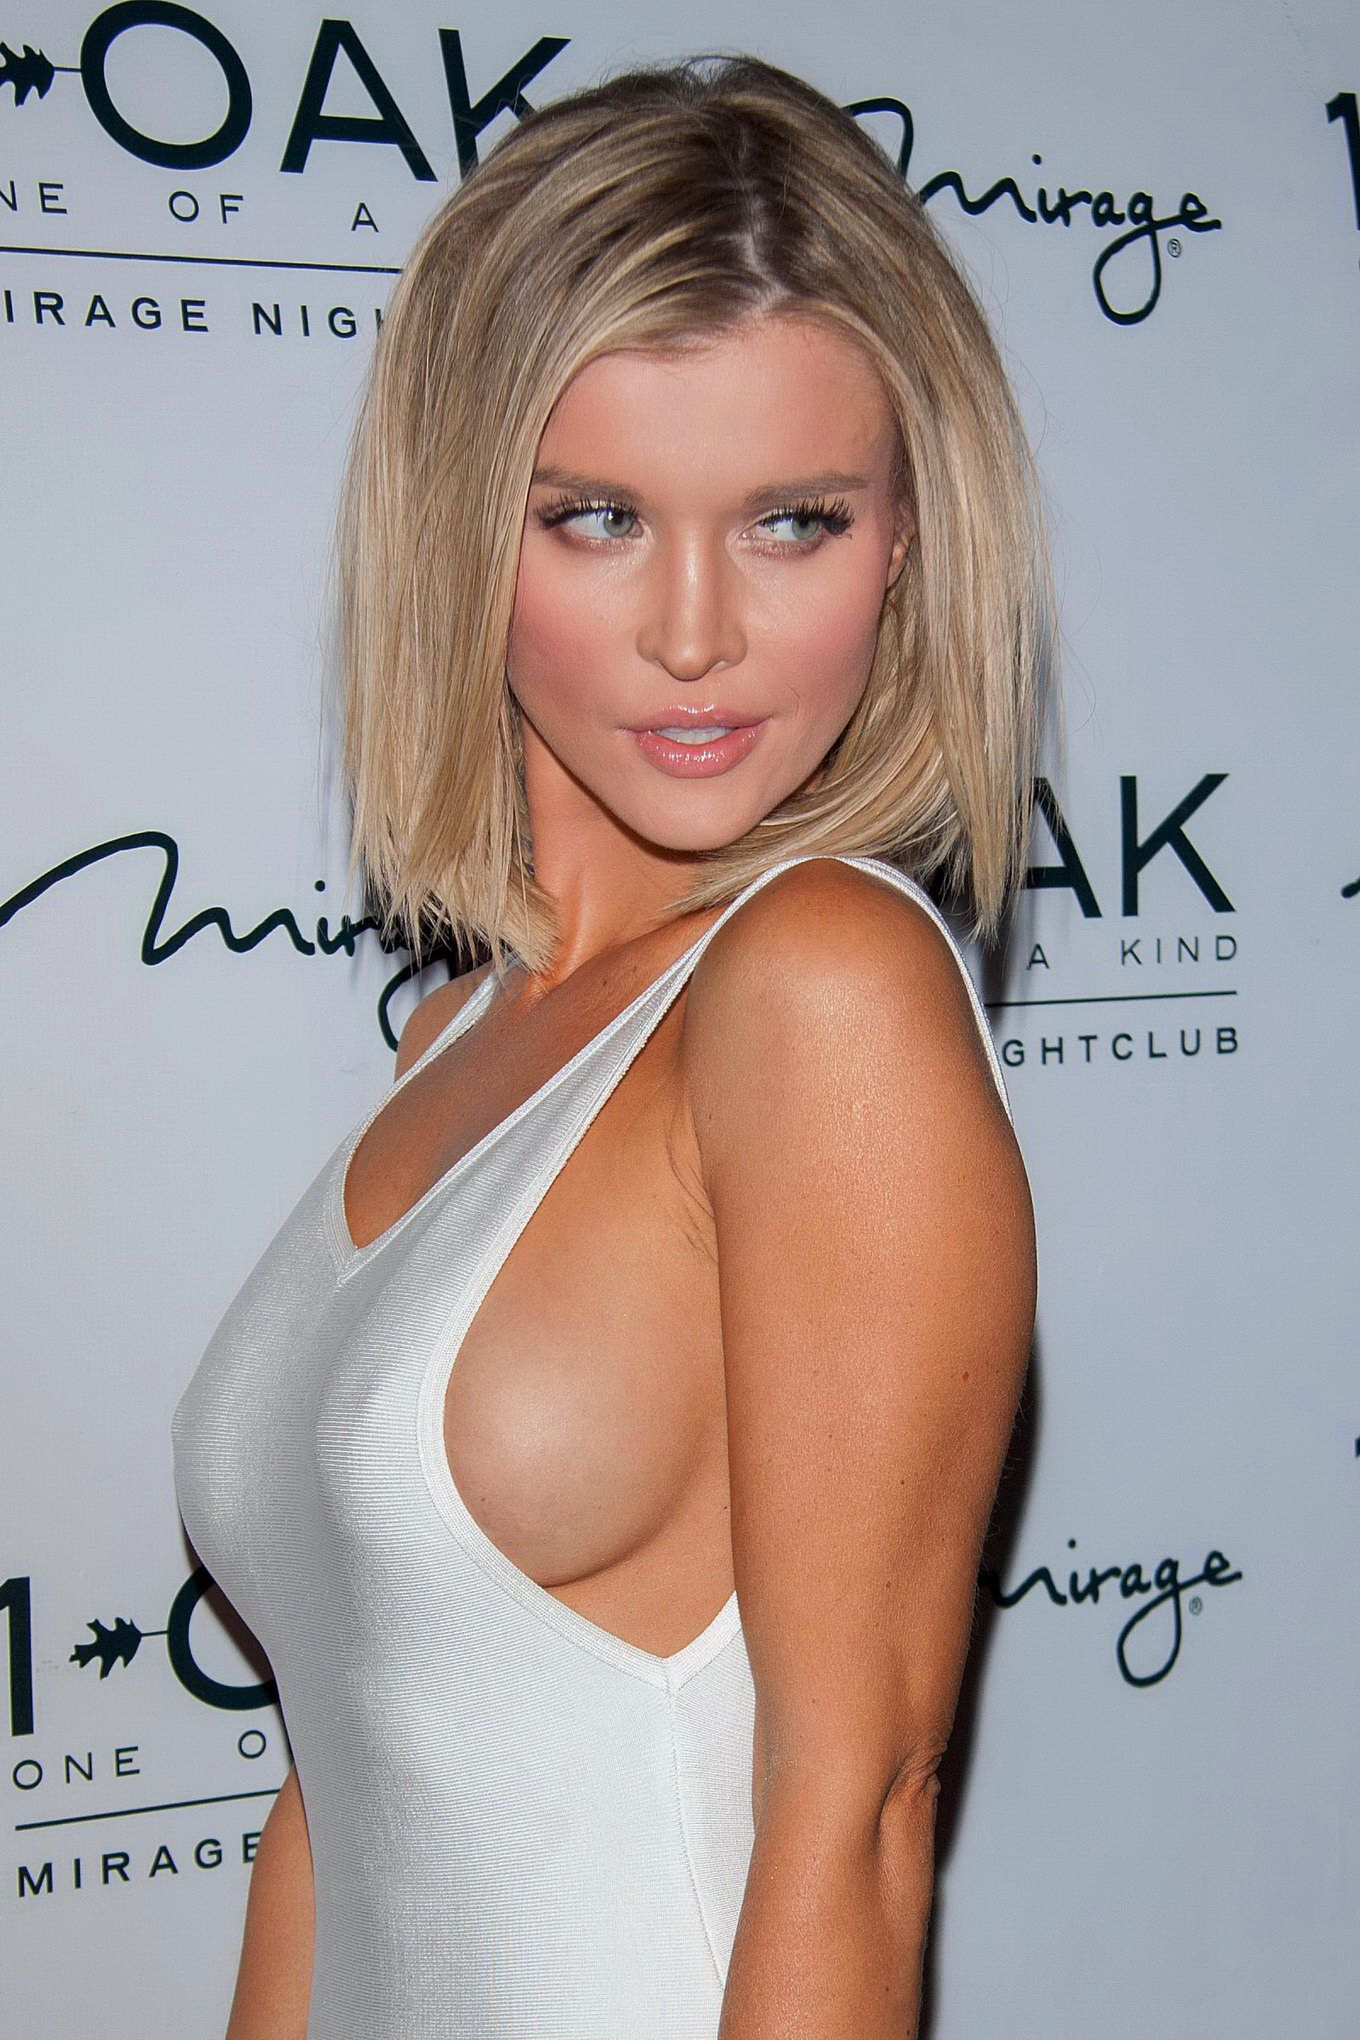 Joanna Krupa braless showing side-boob and pokies in a ...